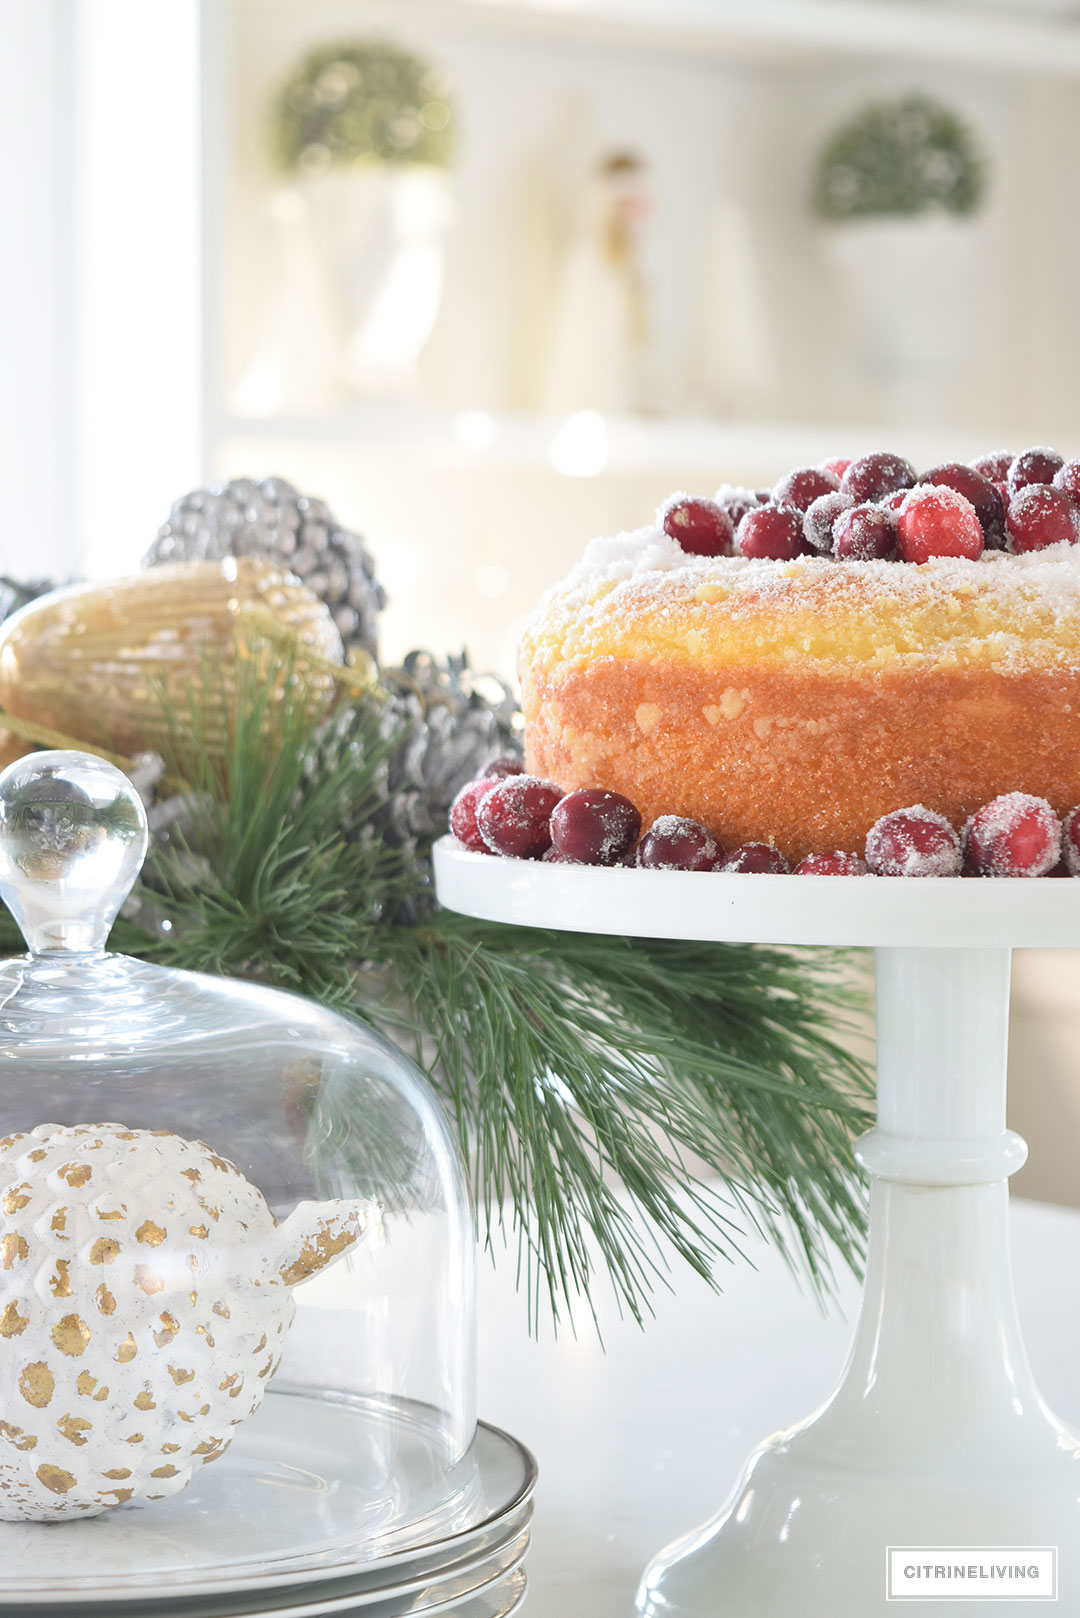 kitchen-christmas-dessert-sugared-cranberries4